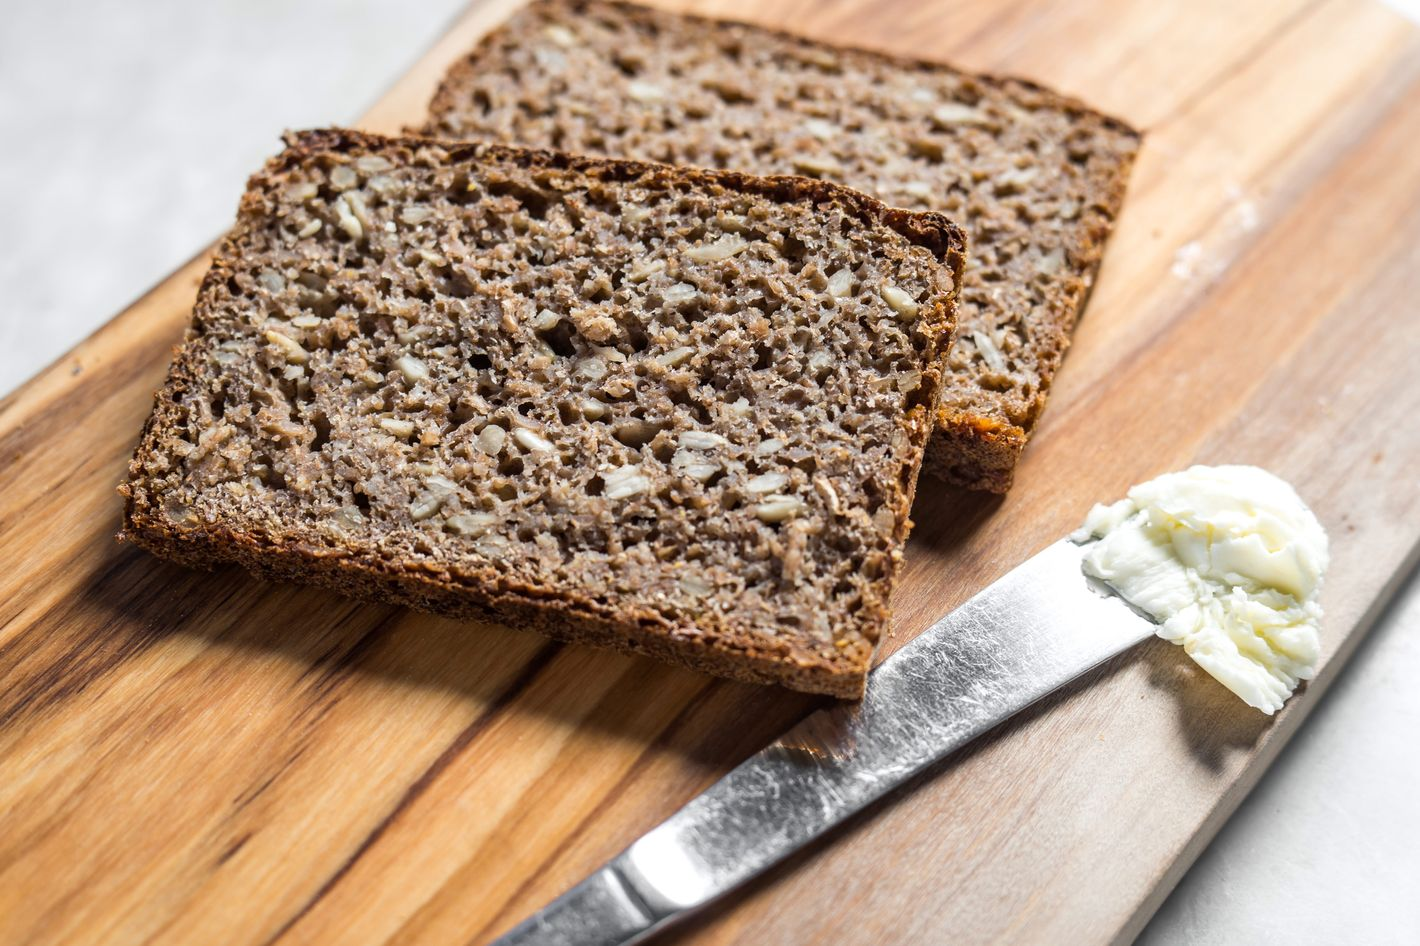 Rugbrød: traditional dense Danish rye bread made with 100 percent whole-grain rye, $7 or $12.